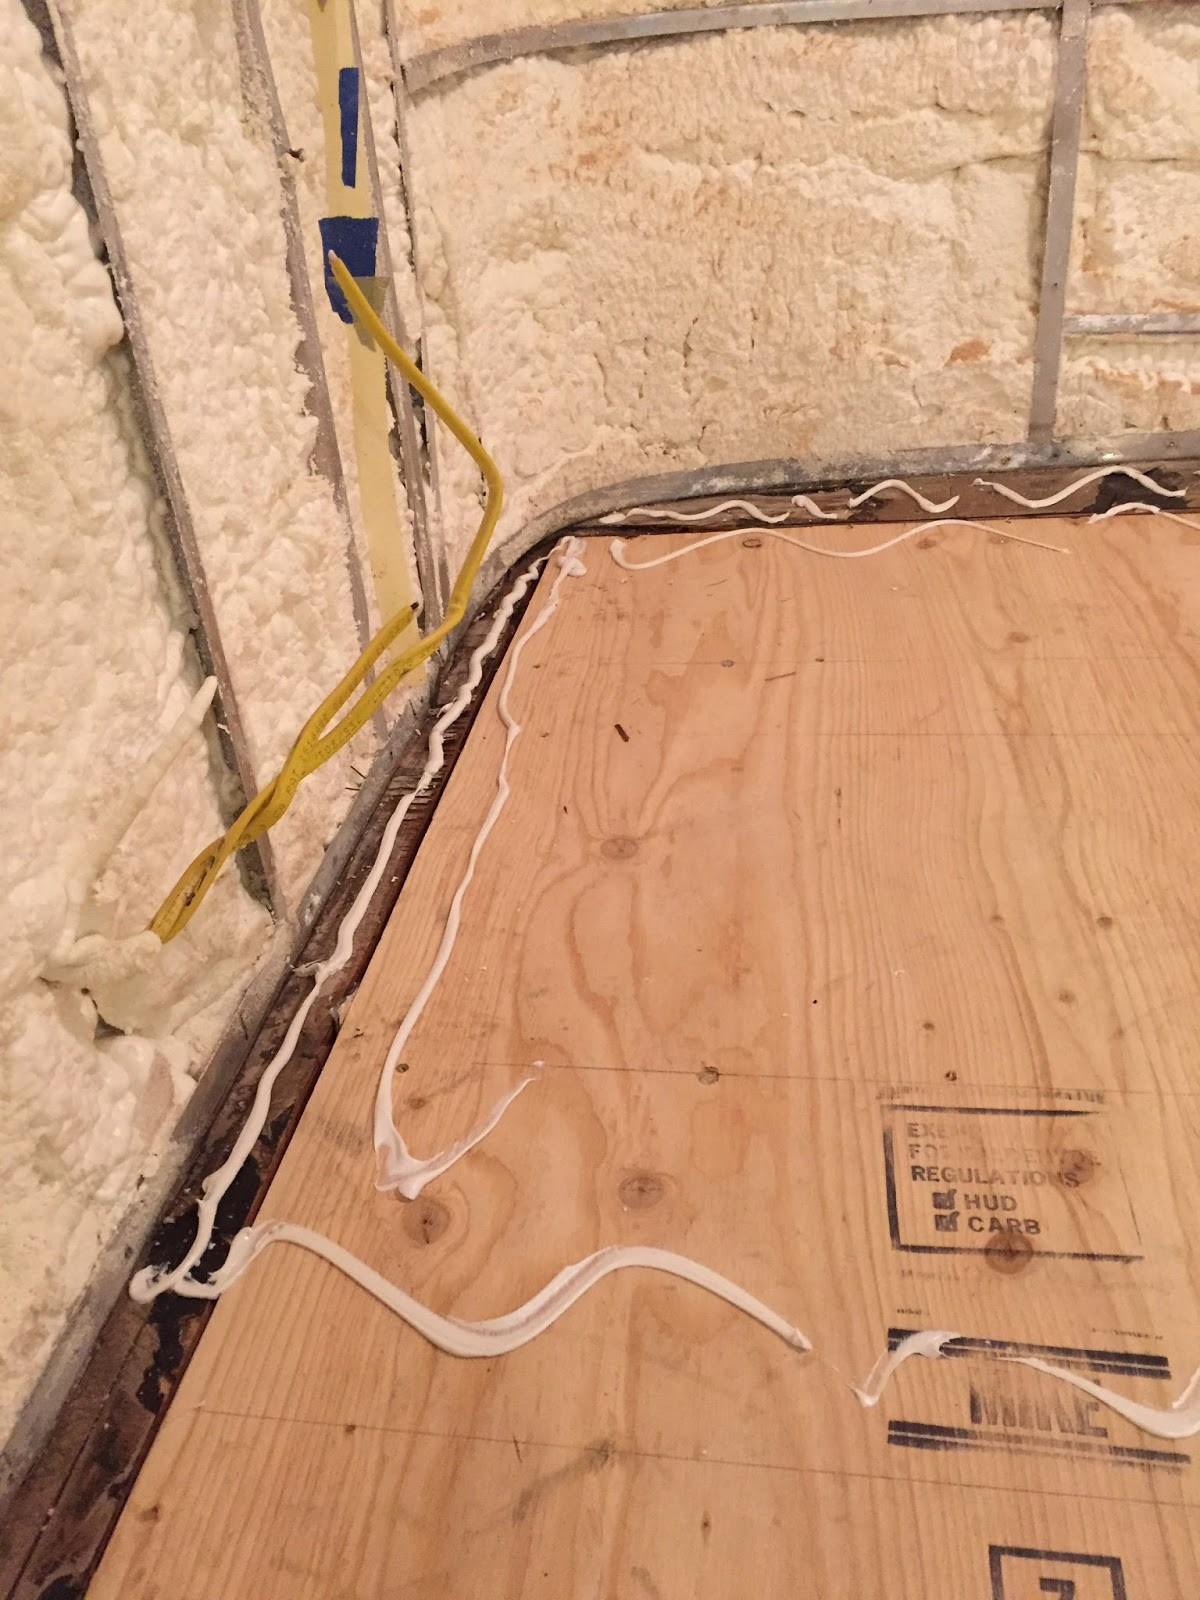 28 Fantastic Hardwood Floor Refinishing Bend oregon 2021 free download hardwood floor refinishing bend oregon of day 8 insulating the floor and subfloor install 1958 spartan for in this way i added most if not all of the original strength back into the frame an